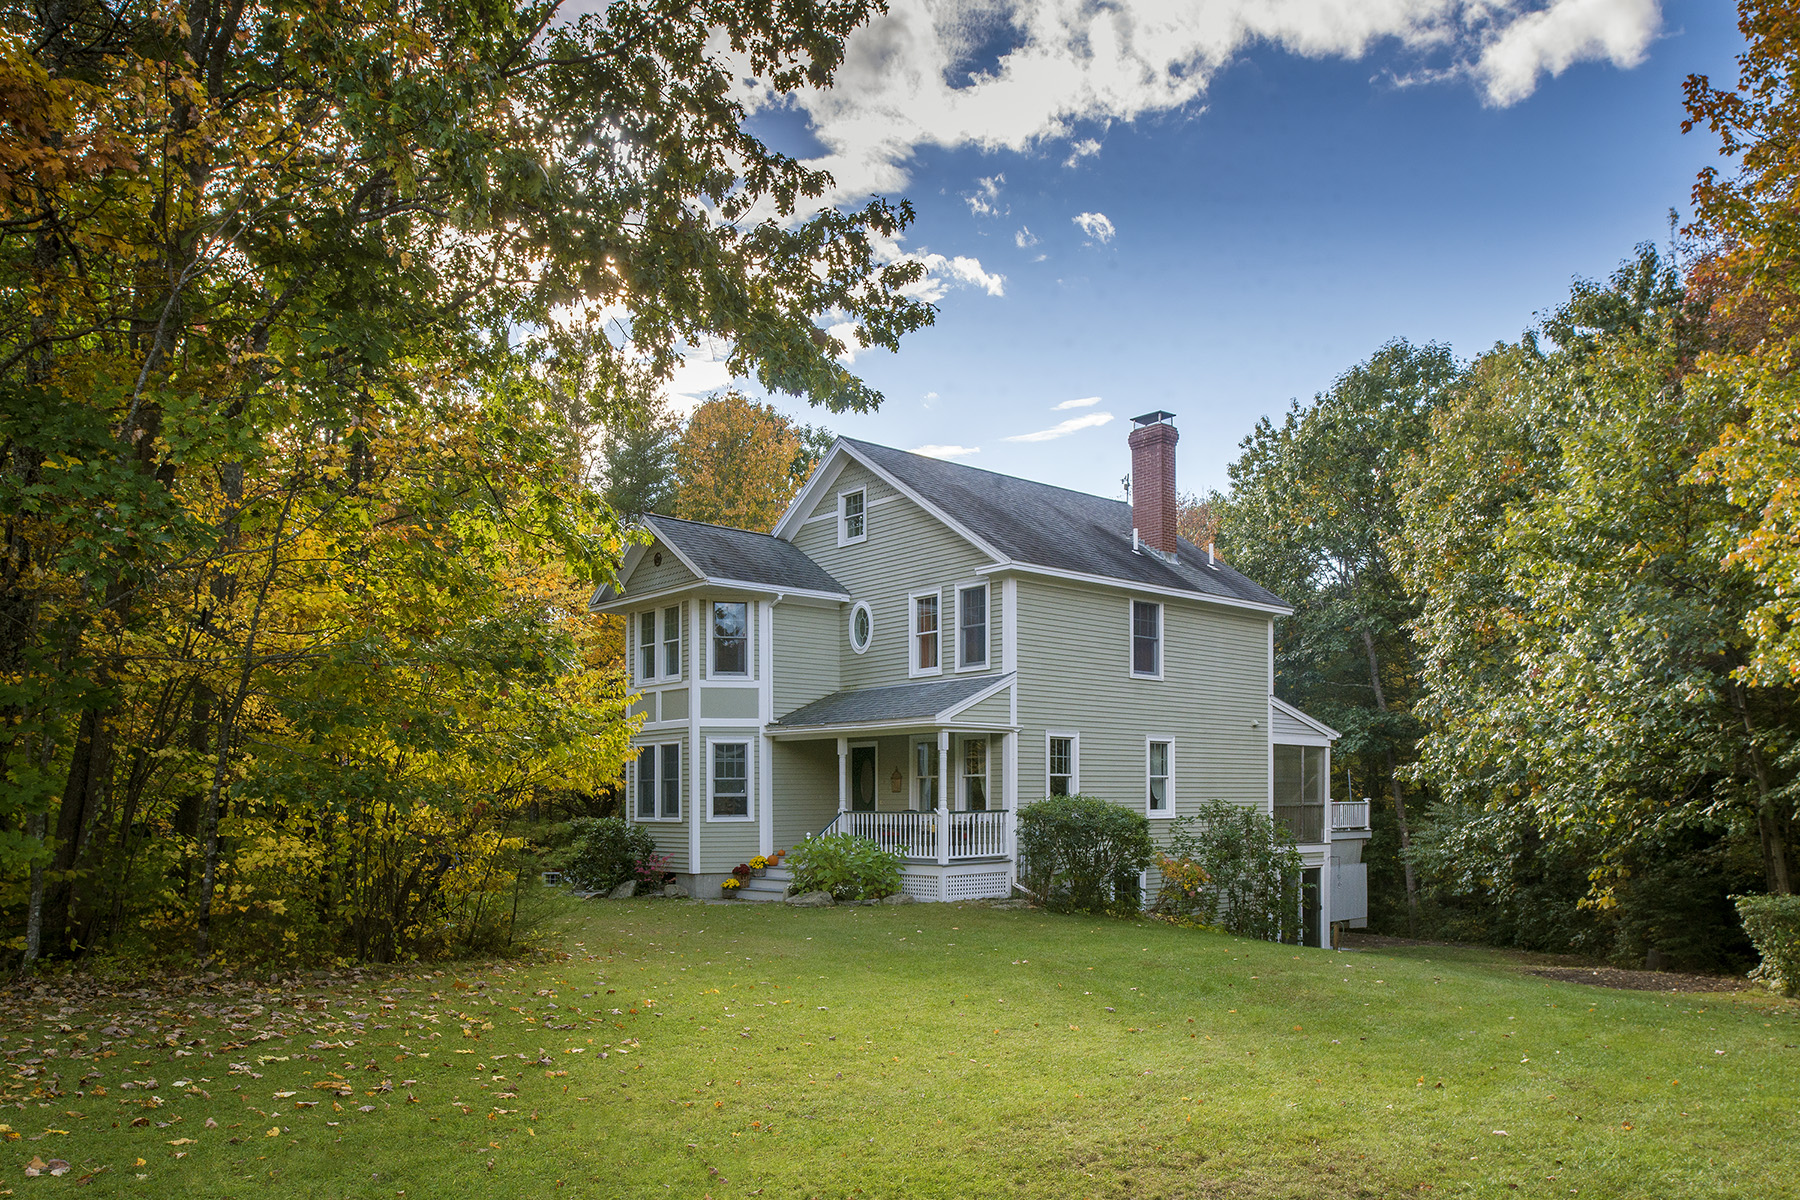 Single Family Home for Sale at 9 Stonewall Way Falmouth, Maine 04105 United States